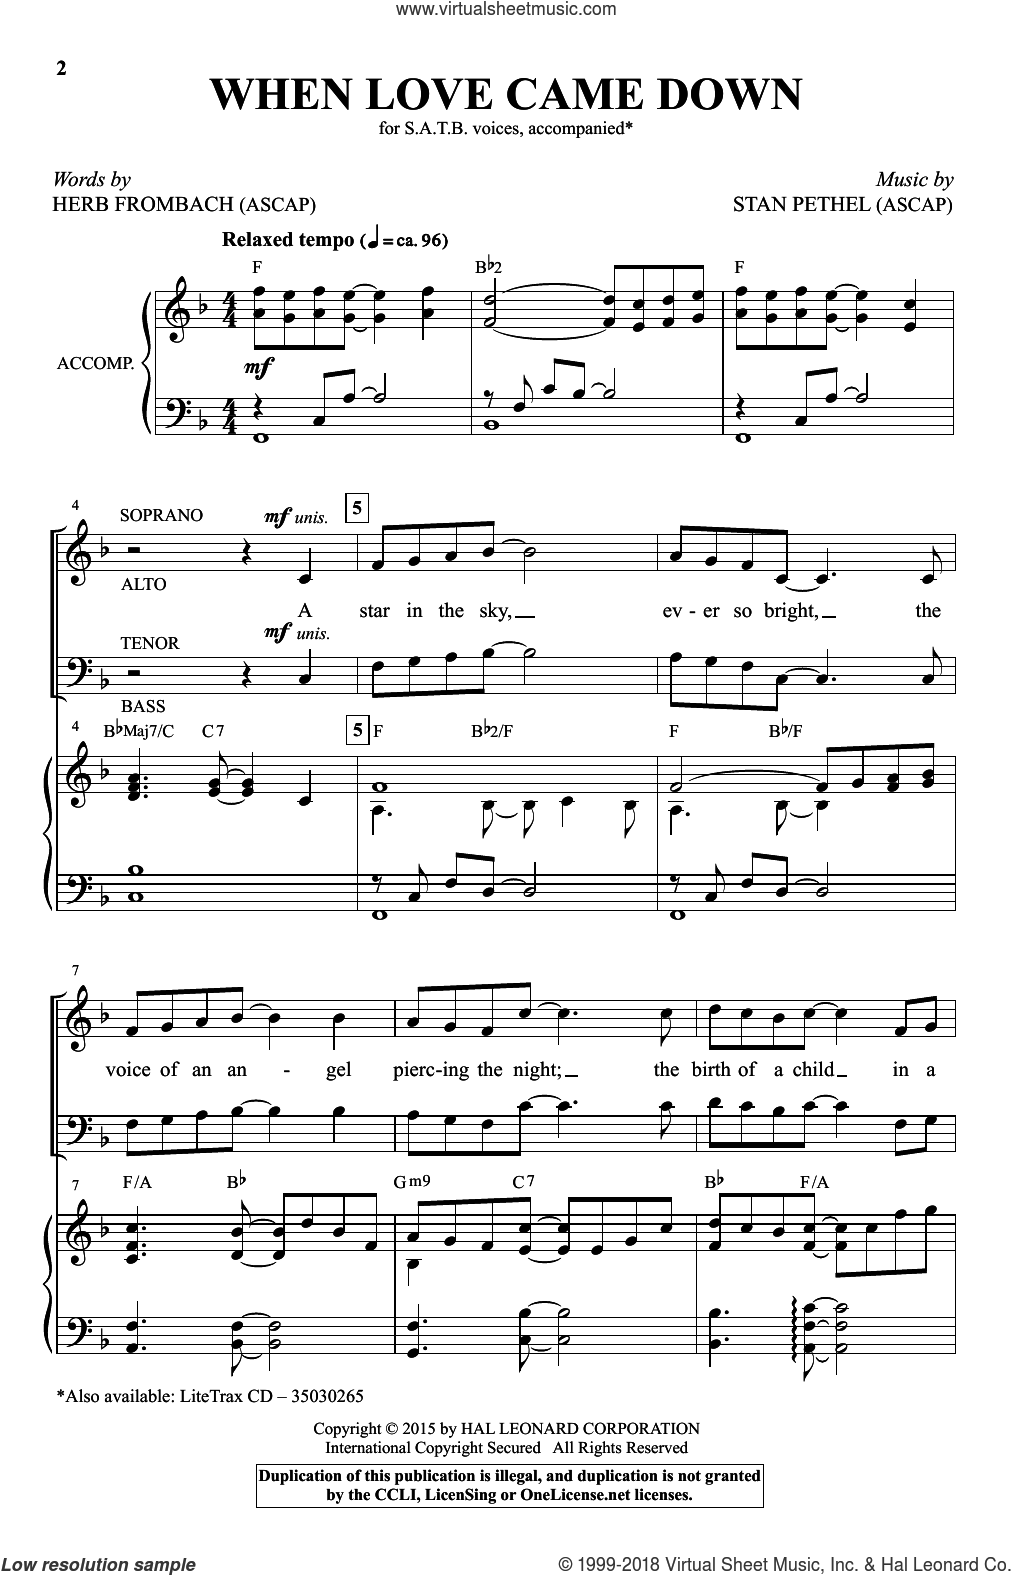 When Love Came Down sheet music for choir (SATB: soprano, alto, tenor, bass) by Stan Pethel and Herb Frombach, intermediate skill level